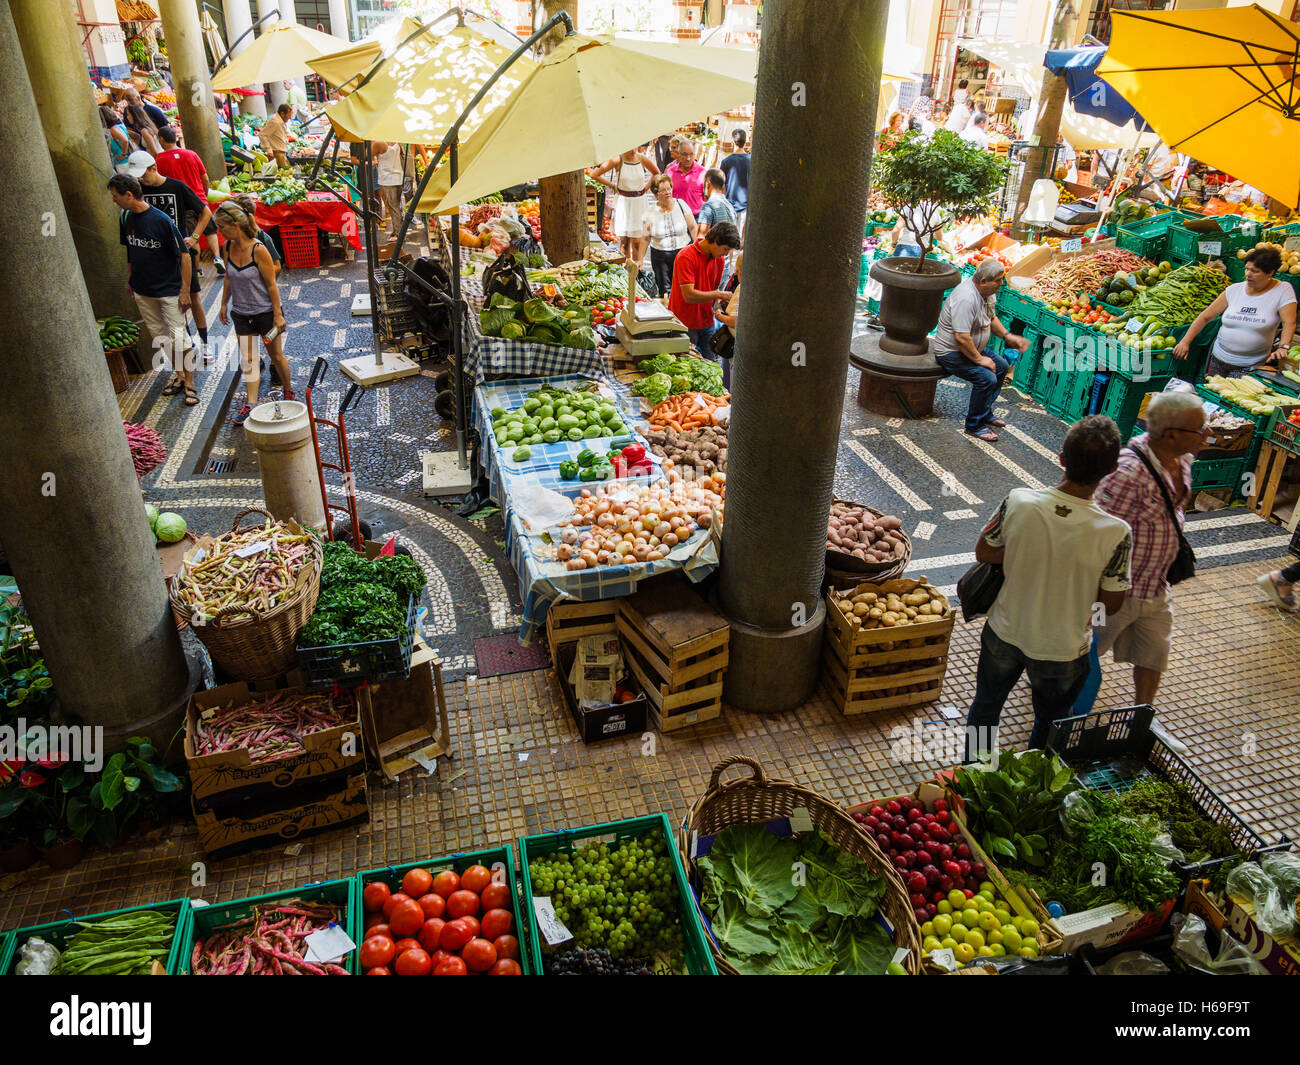 Fruit and vegetables are for sale in the Funchal market hall on the Portuguese island of Madeira - Stock Image